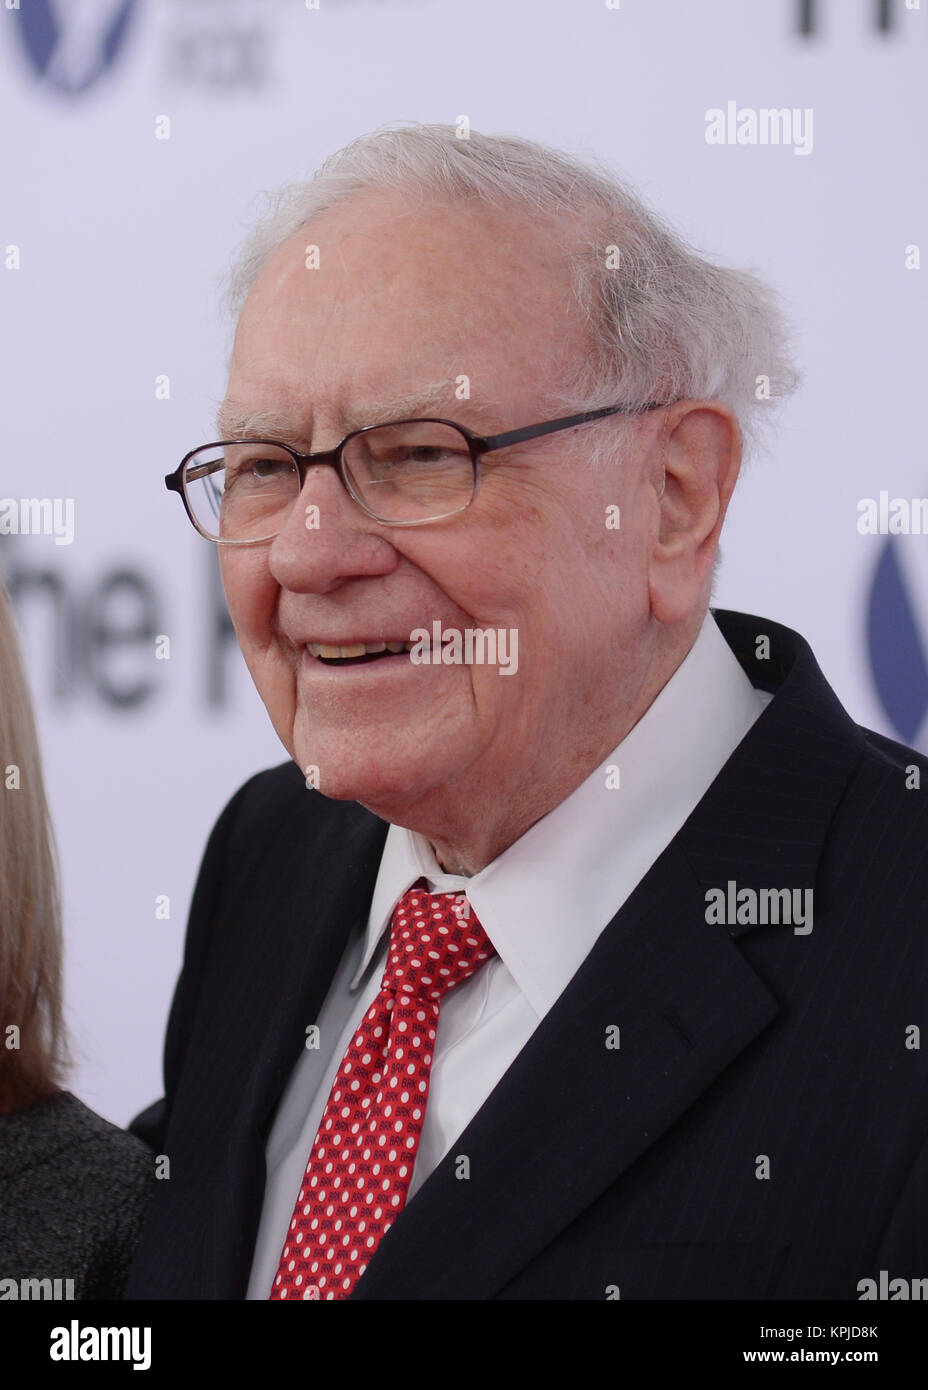 Warren Buffett arrives at 'The Post' Washington, DC Premiere at The Newseum on December 14, 2017 in Washington, - Stock Image